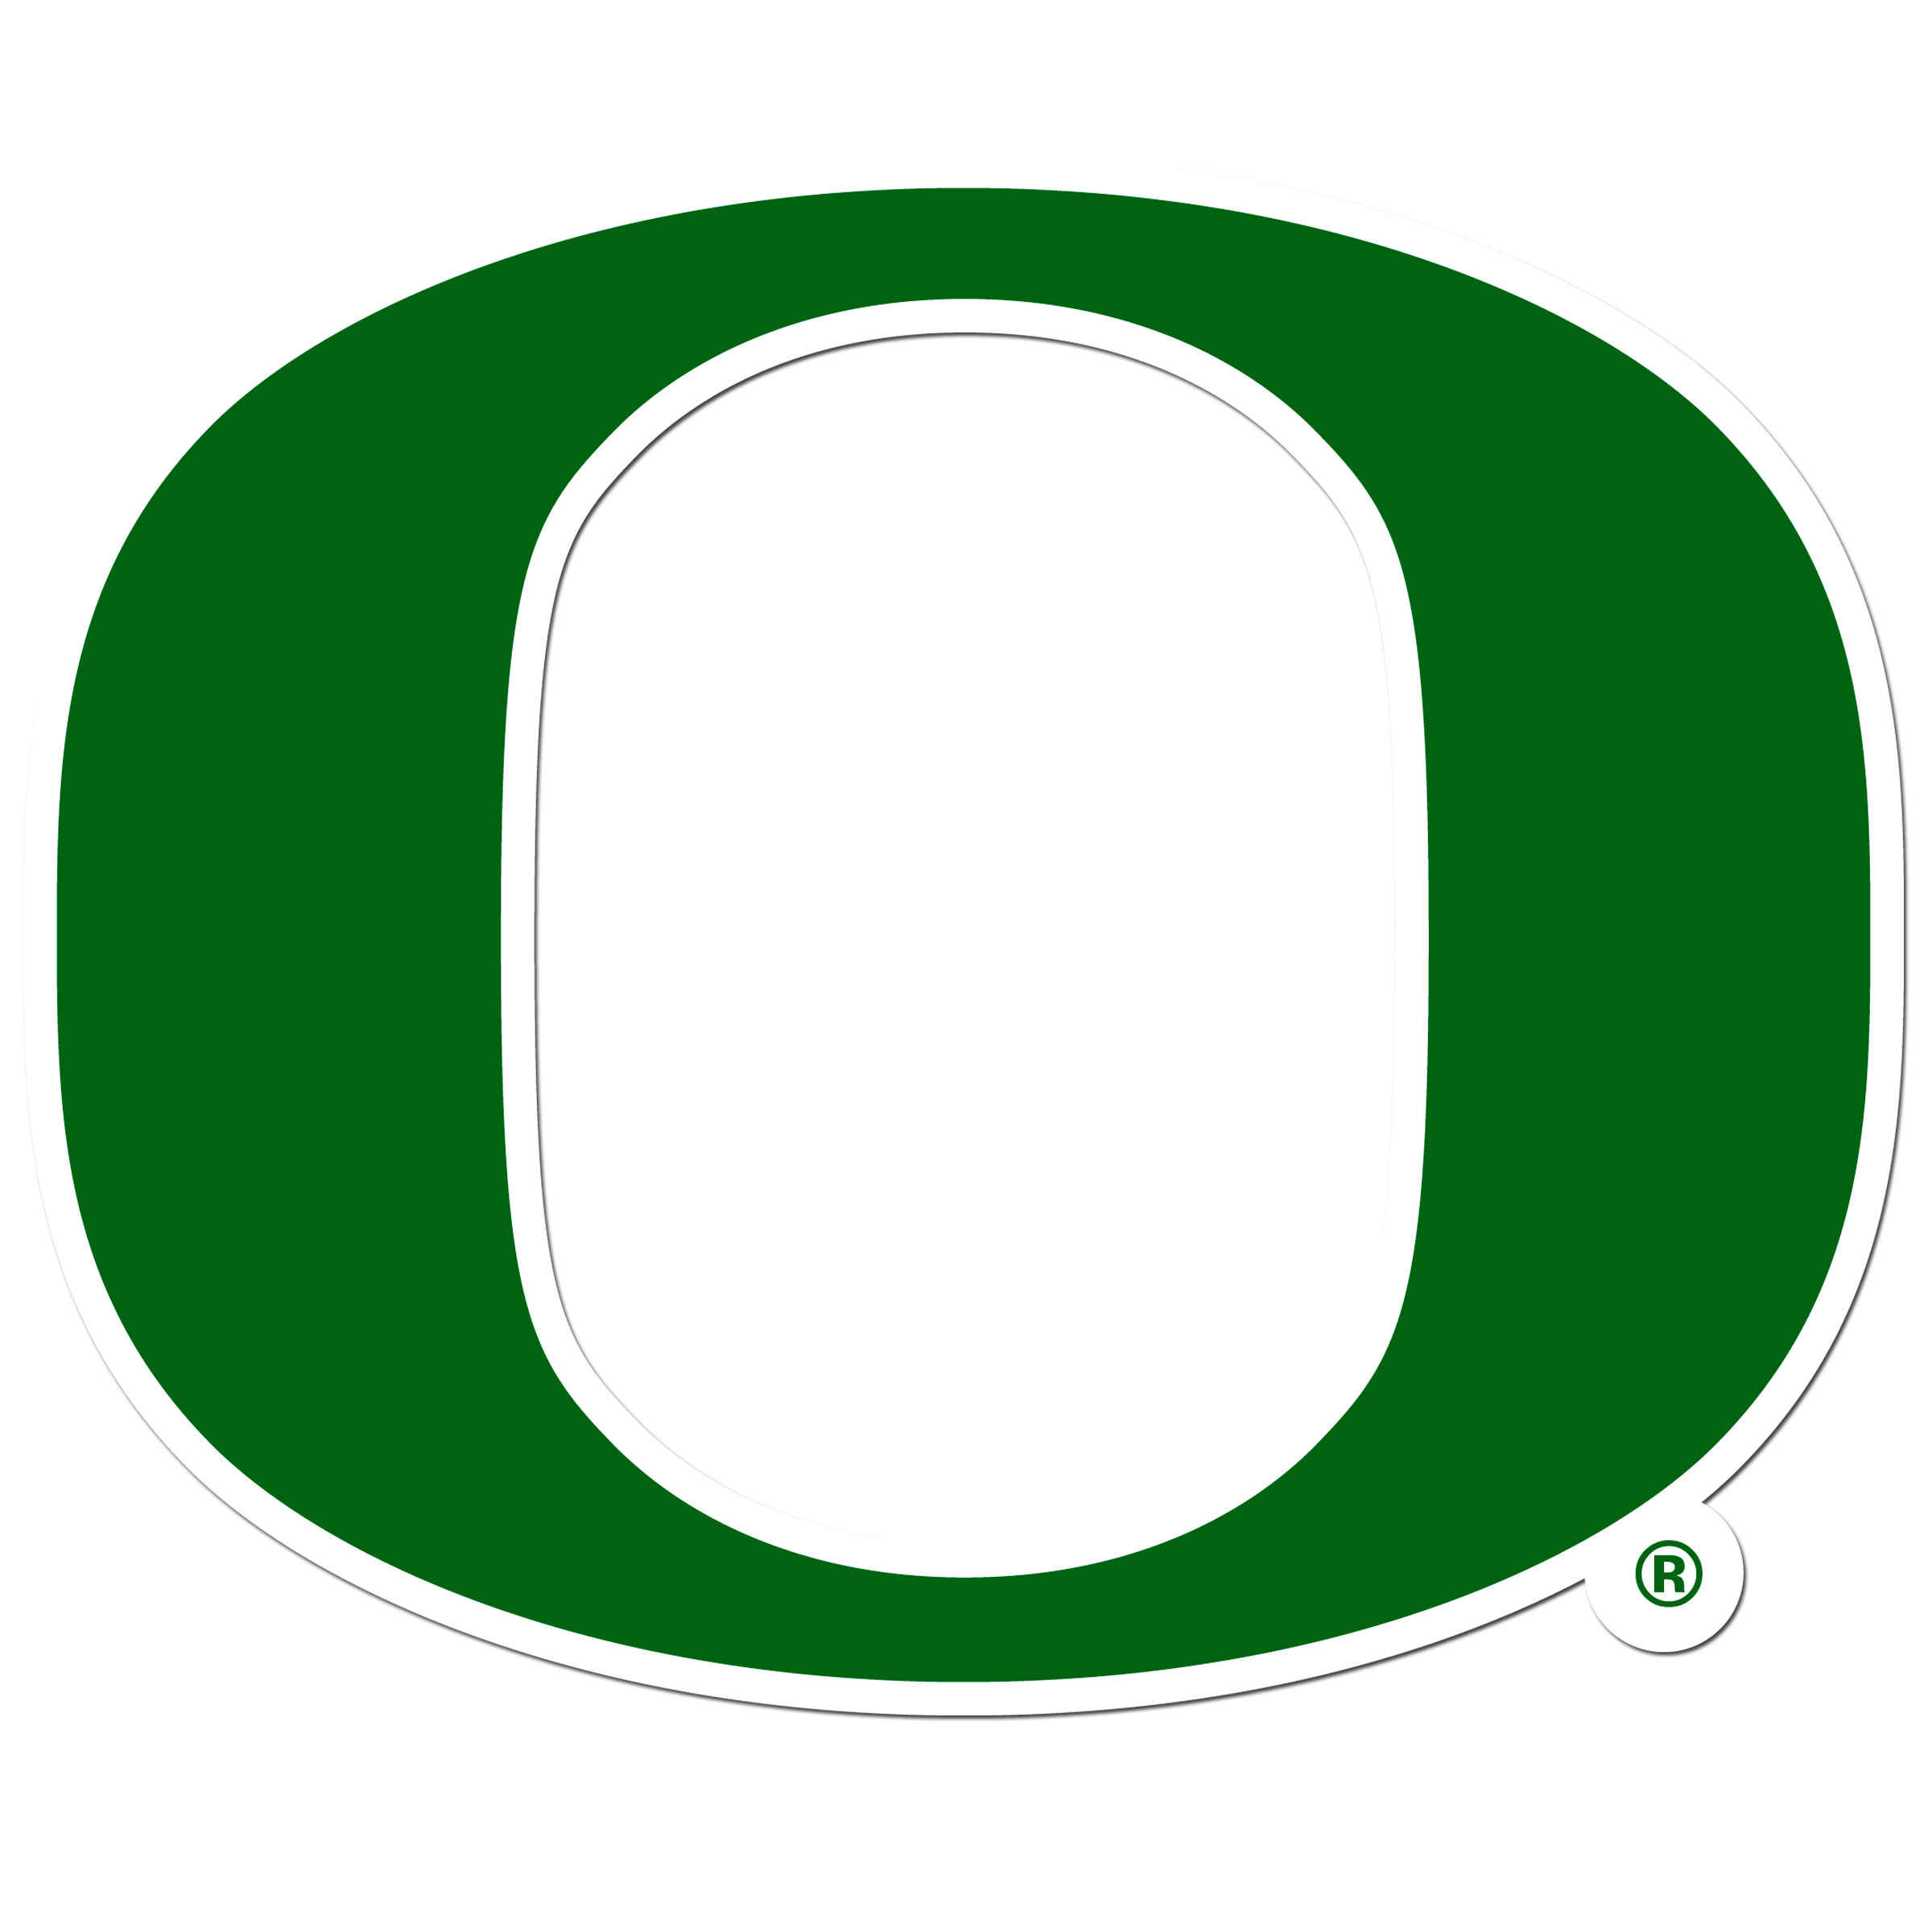 Oregon Ducks 8 inch Auto Decal - This bold, 8 inch Oregon Ducks is a great way to show off your team pride! The low tack vinyl decal is easily positioned and adjusted to make sure you get that logo in just the right spot on your vehicle. Designed to be used on the outside of the window.